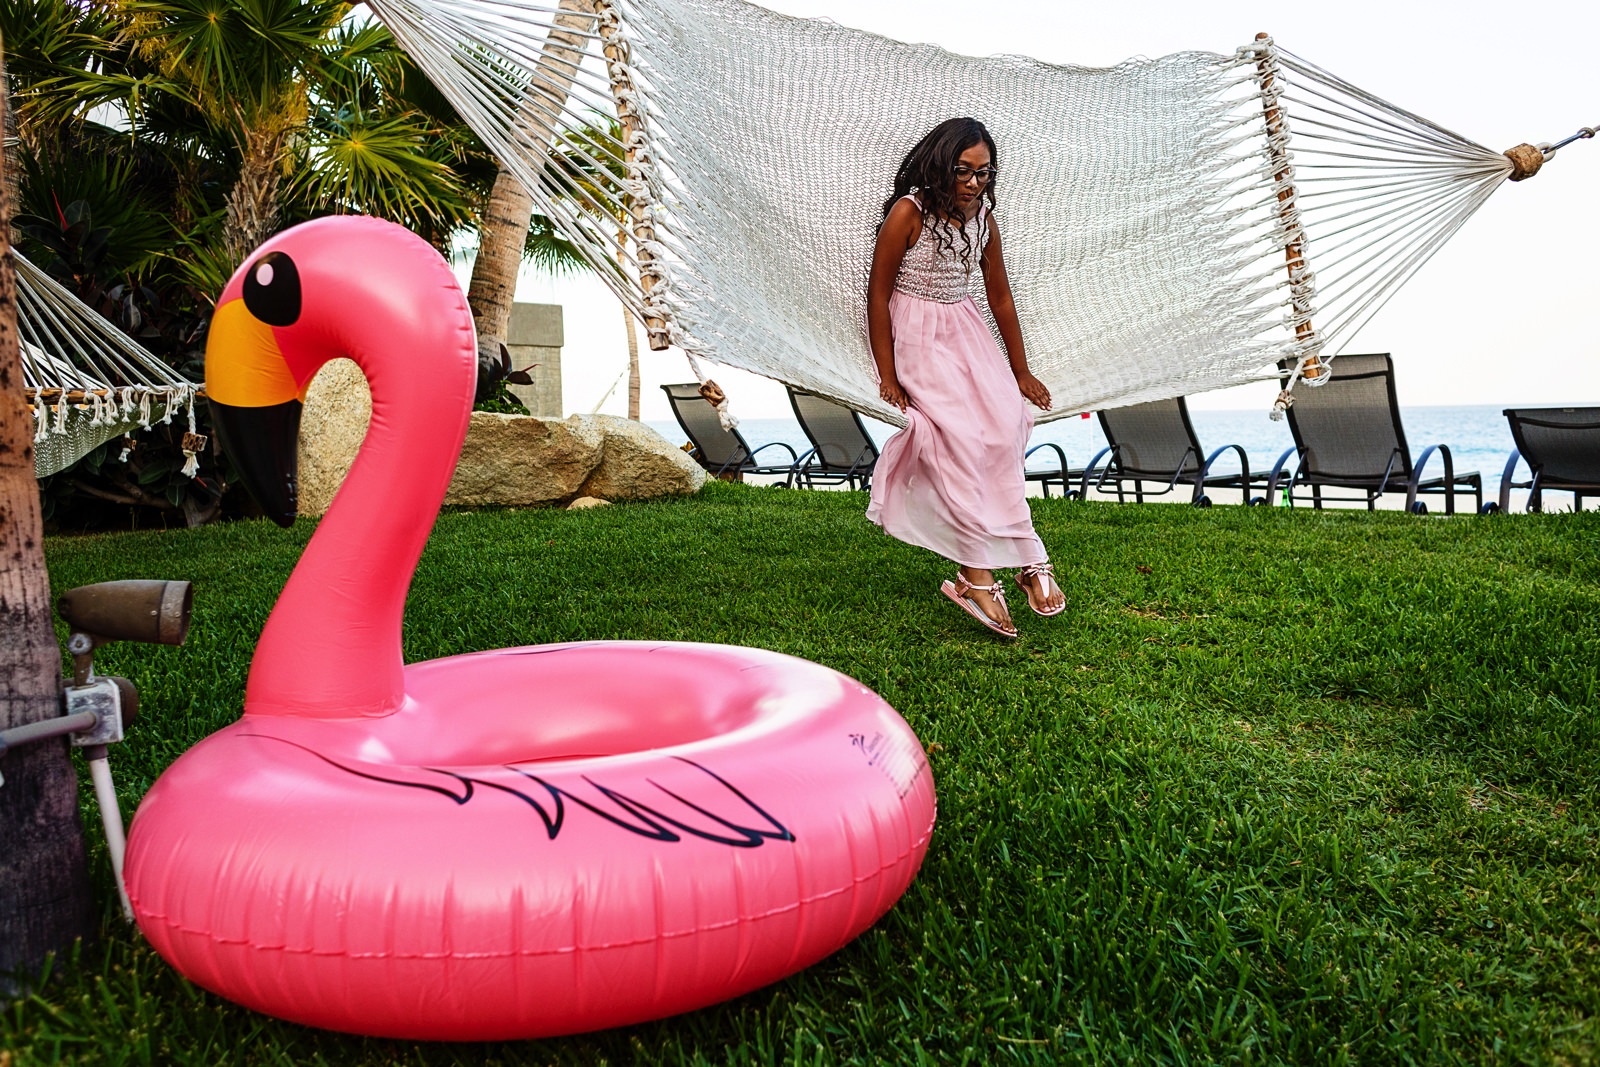 Girl swinging on a hammock on the grass area next to a pink flamingo floatier